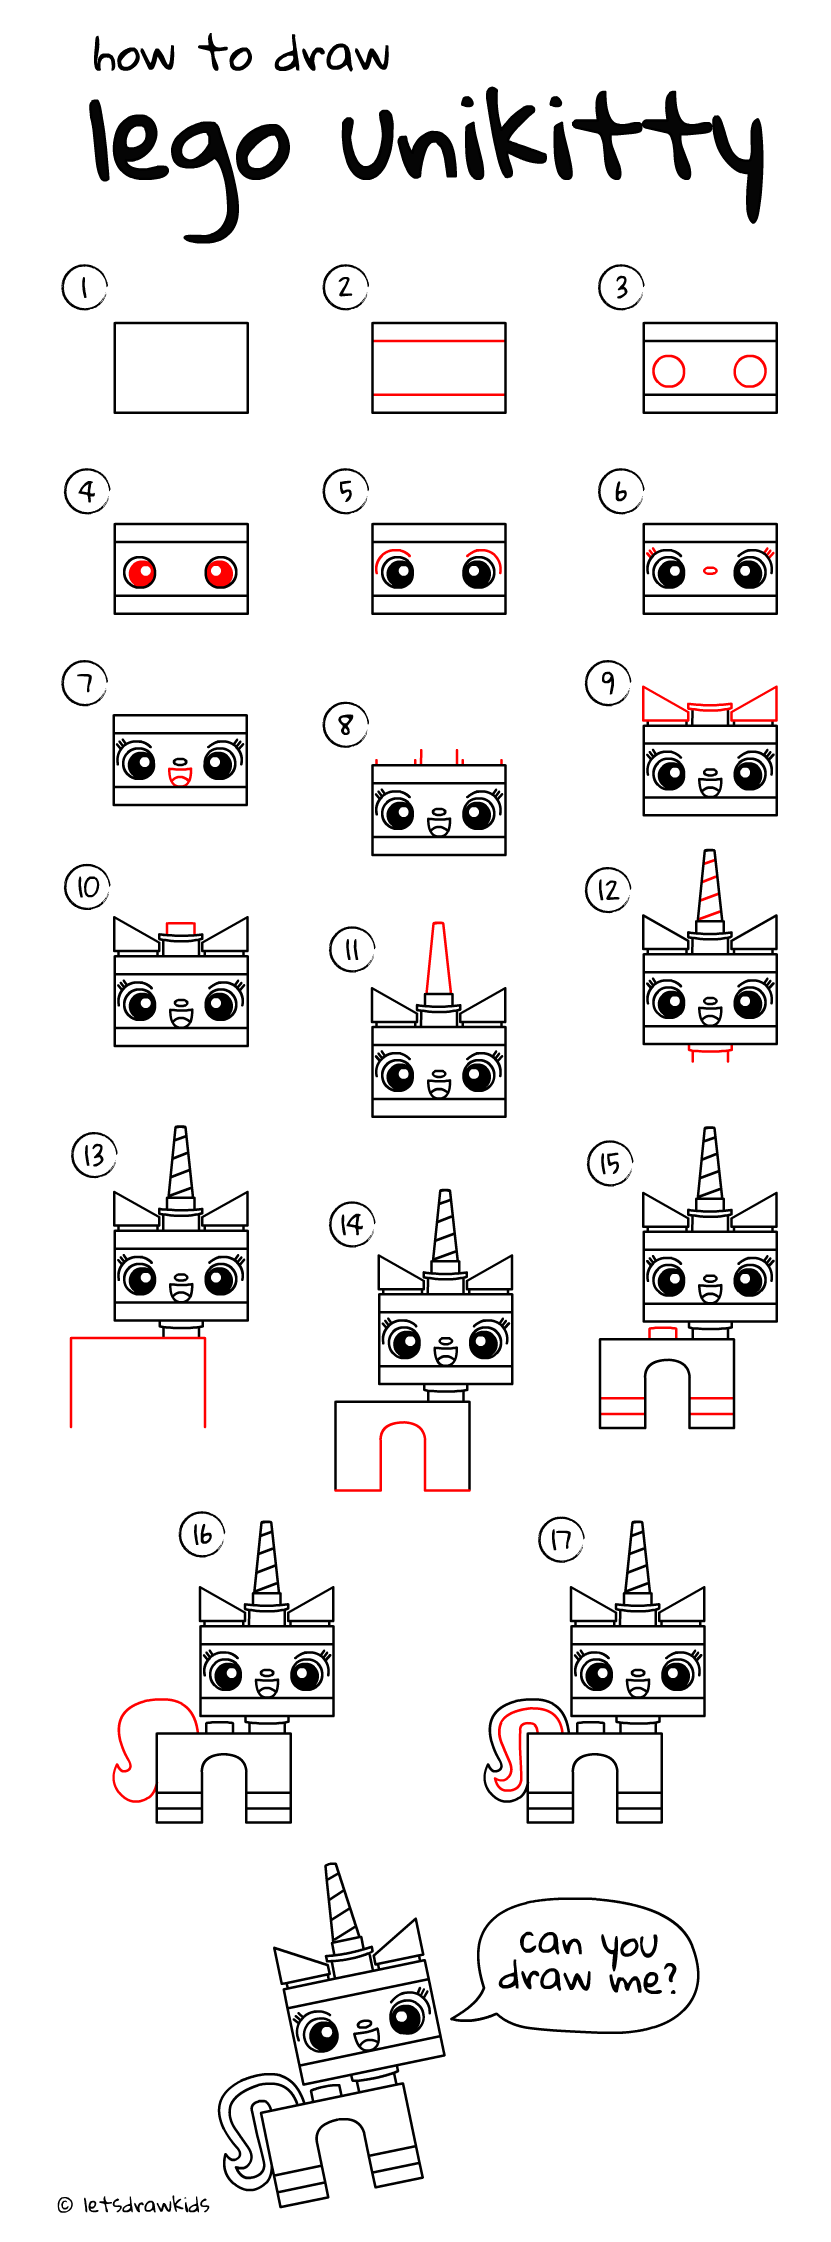 How to draw LEGO UNIKITTY. Easy drawing, step by step